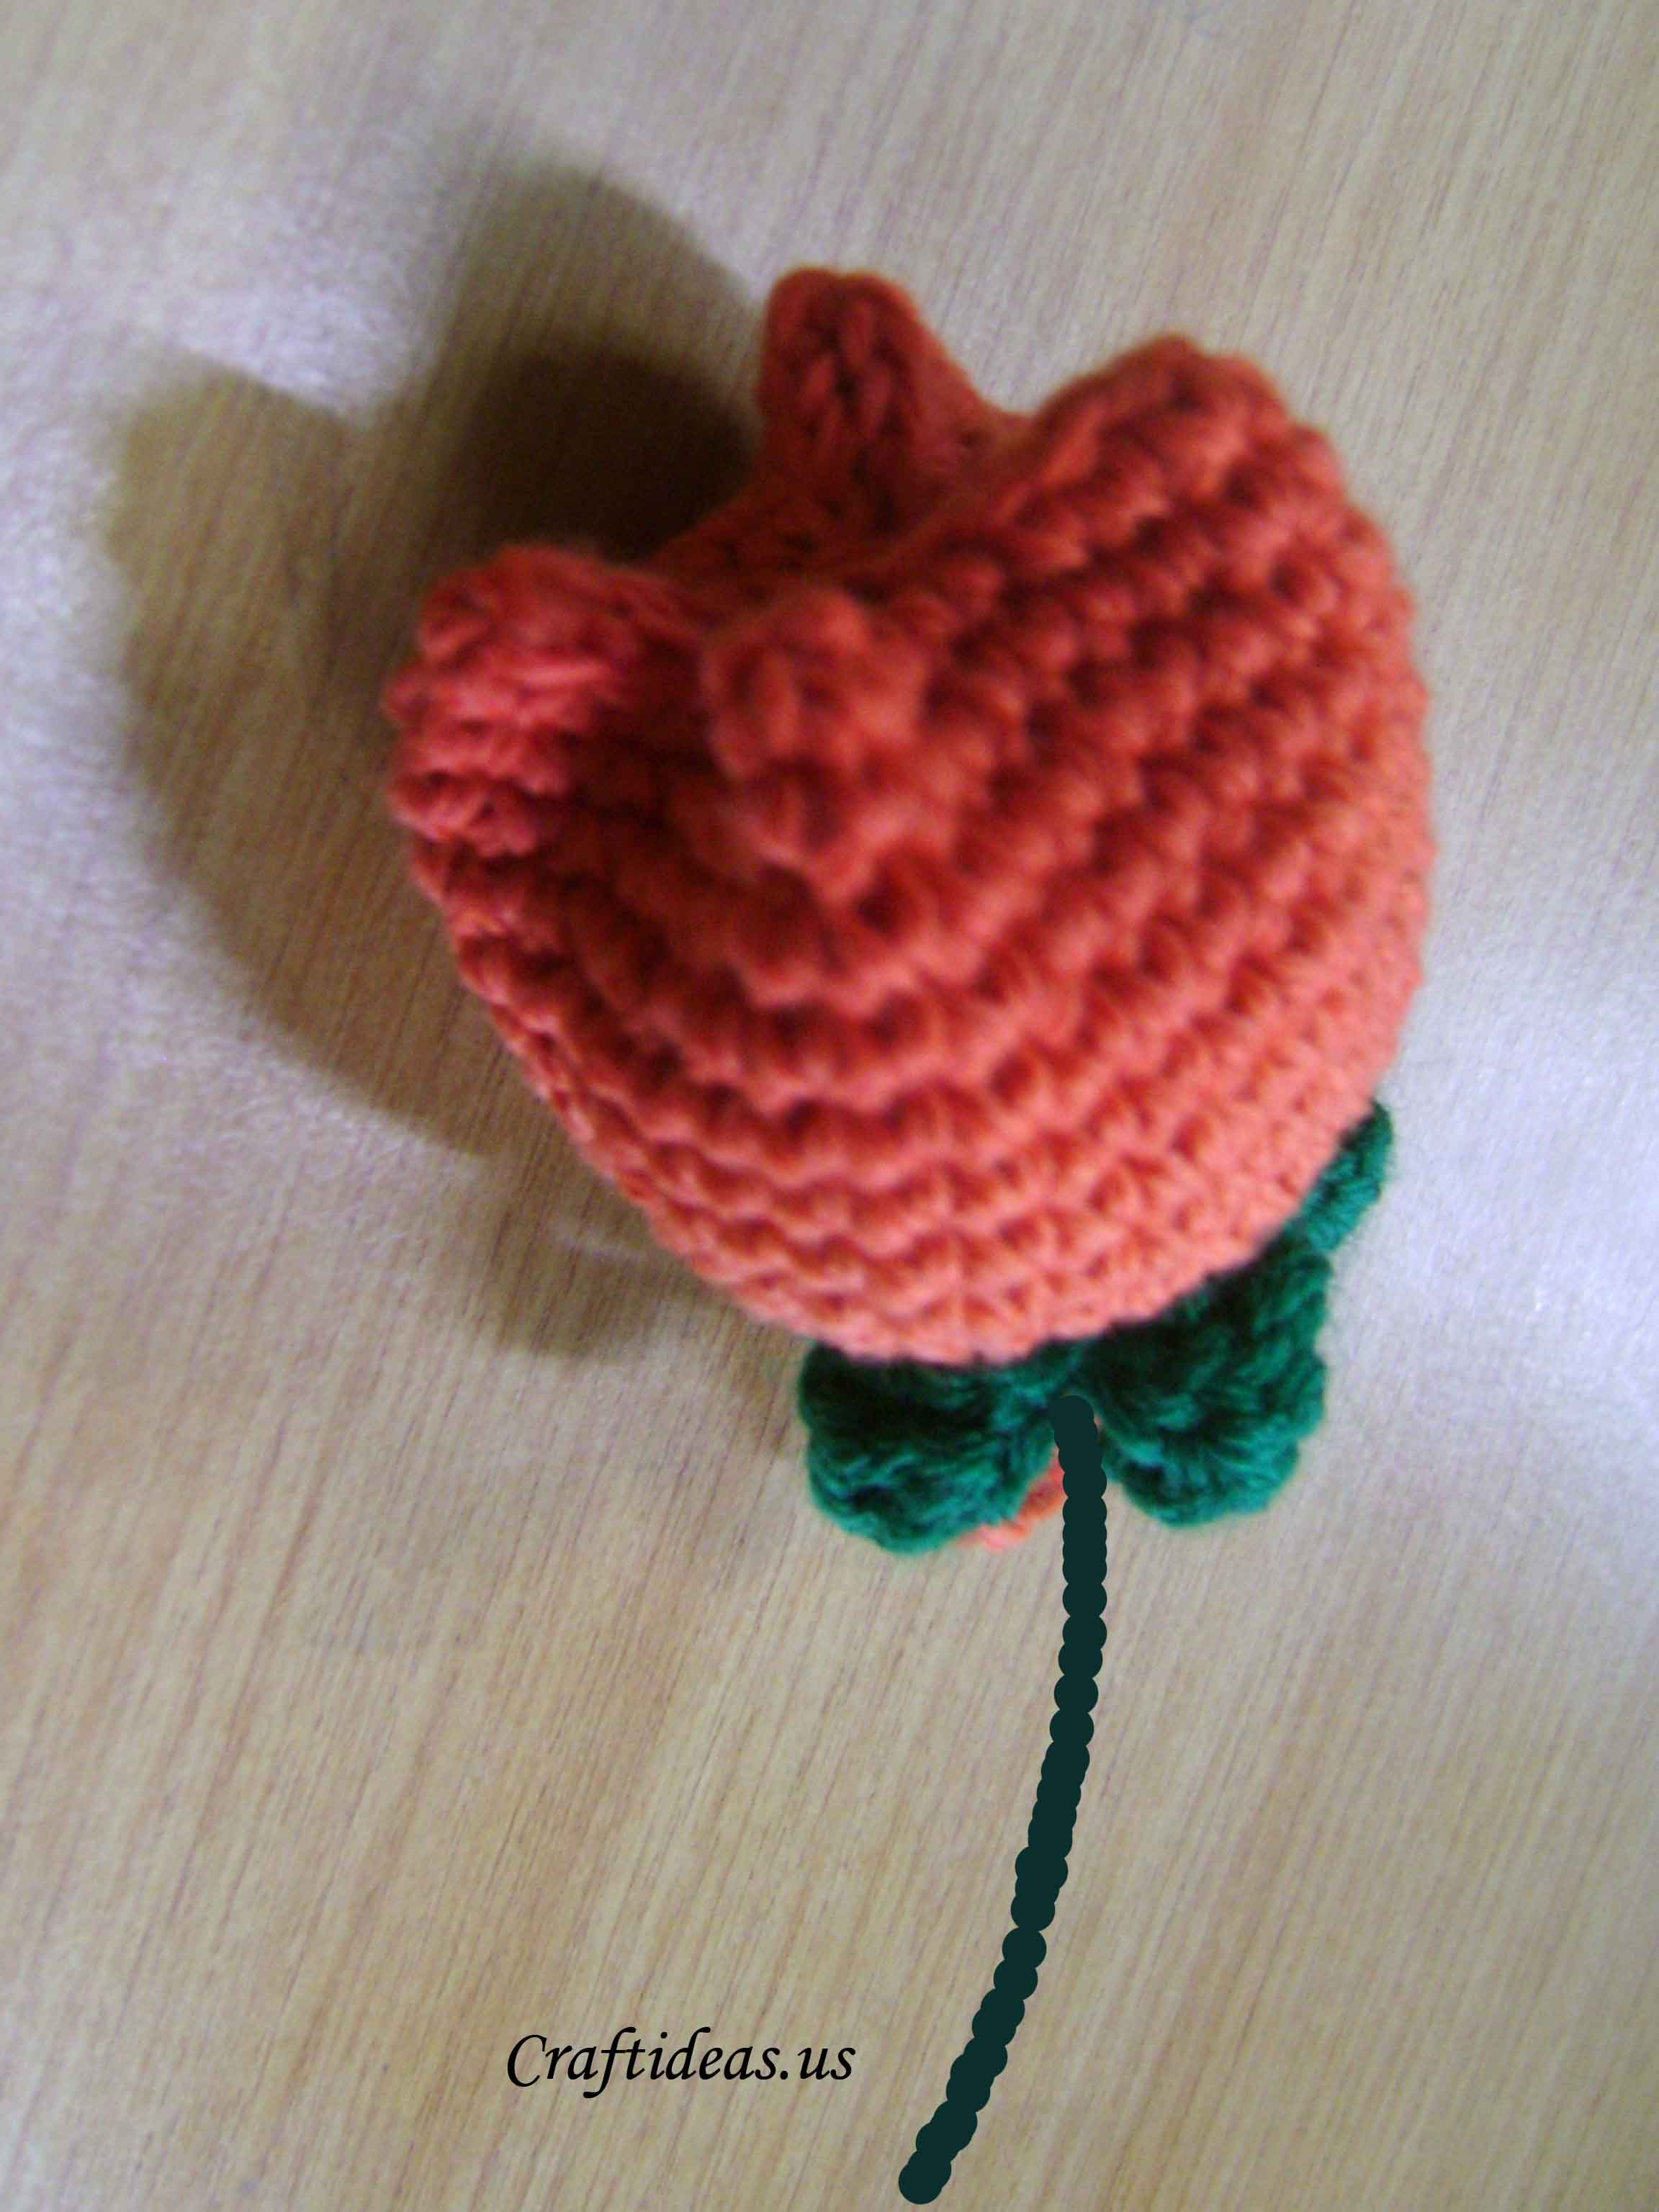 Crocheting Tutorials : crochet tulip flower tutorial